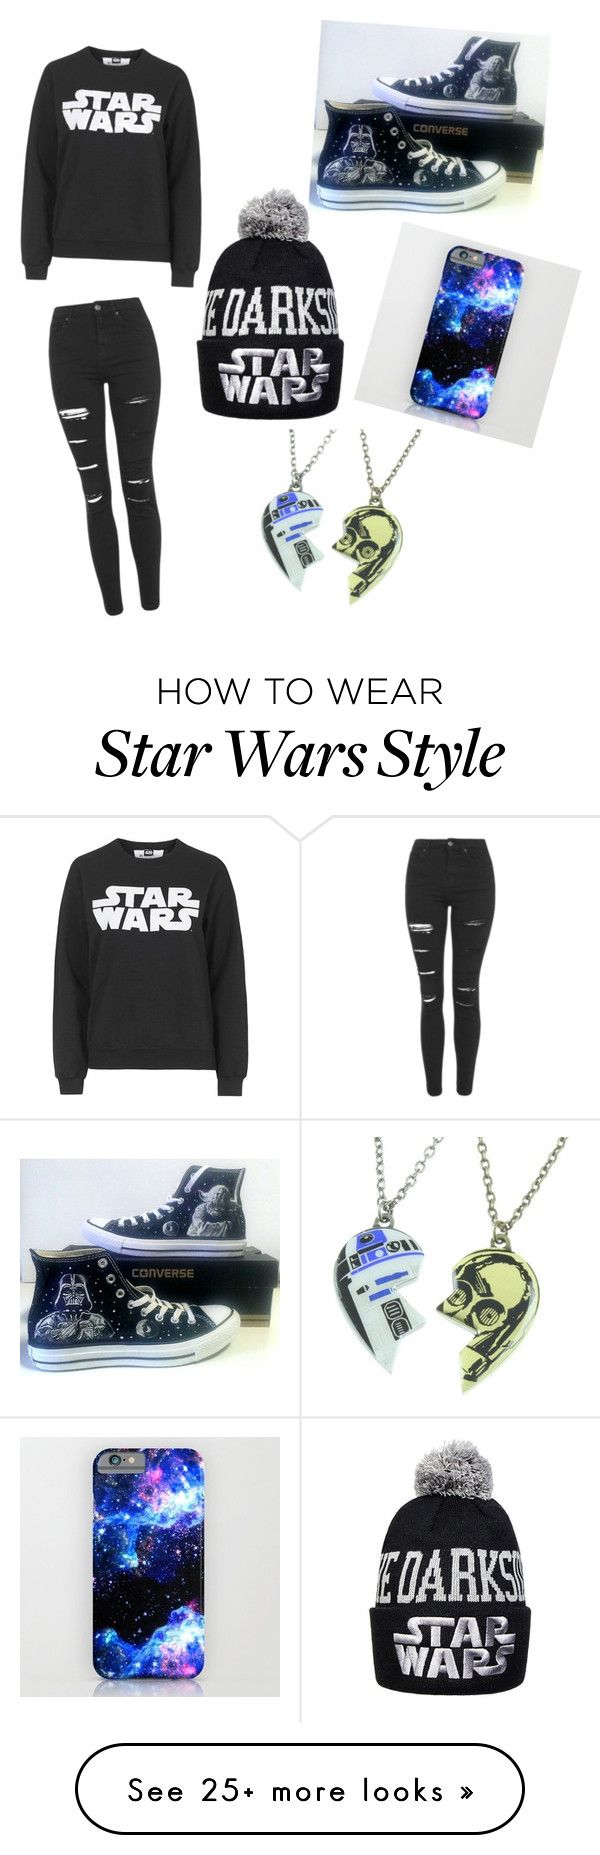 """Star Wars"" by ashley51702 on Polyvore featuring Tee and Cake, Topshop, Converse and R2"